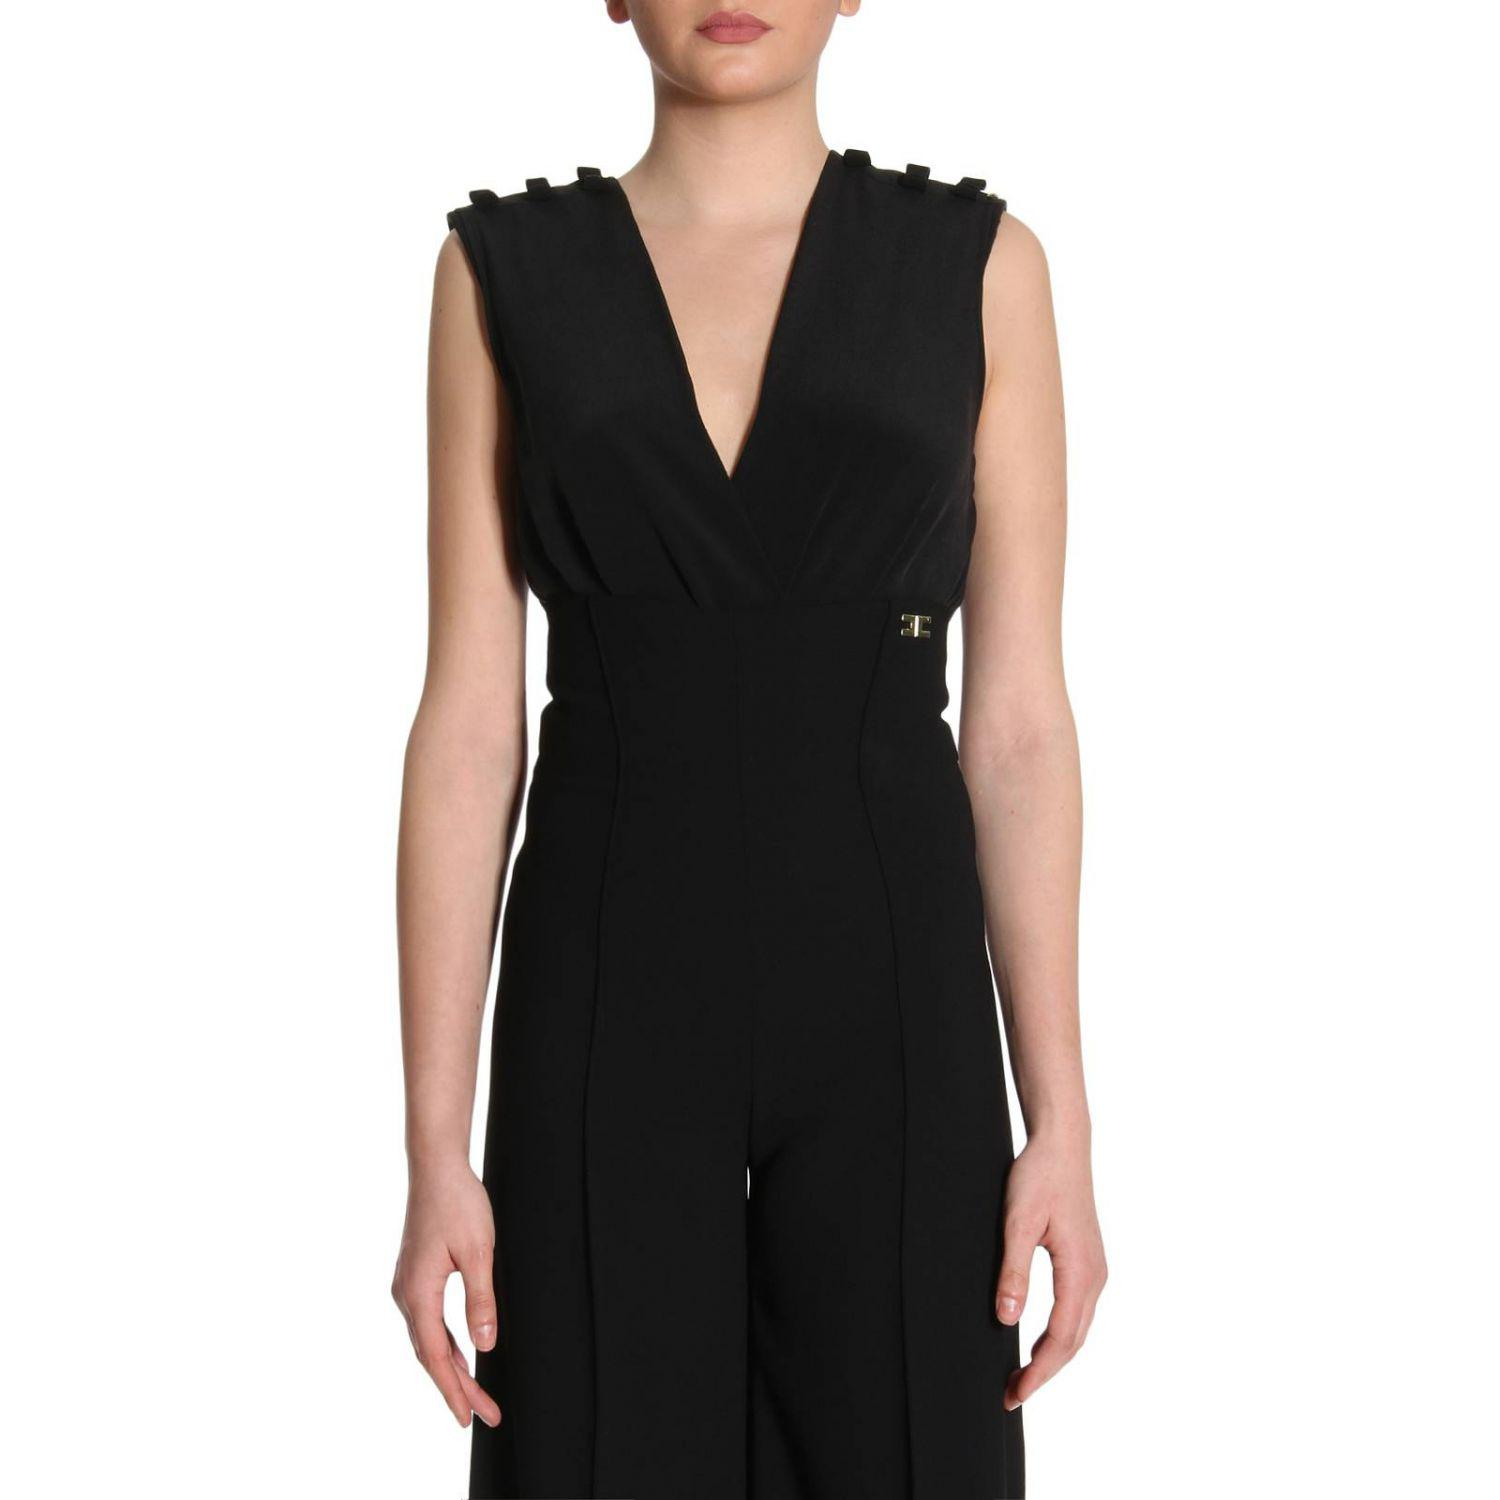 Black body Elisabetta Franchi Cost For Sale Discount Price Cheap Clearance Store Cheap Sale Wiki VroAXI2wP